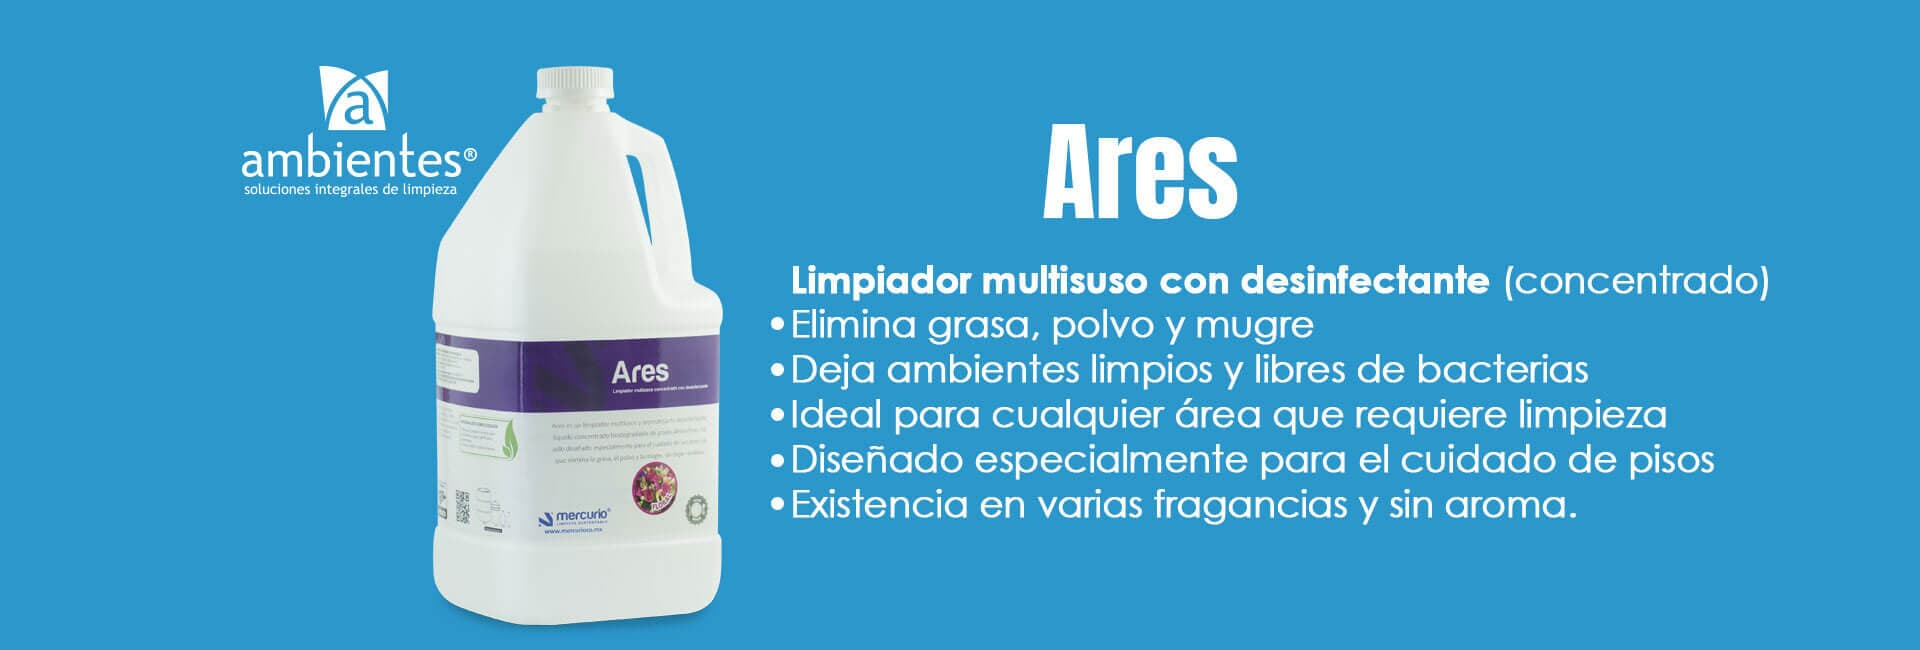 AMBIENTES - ARES